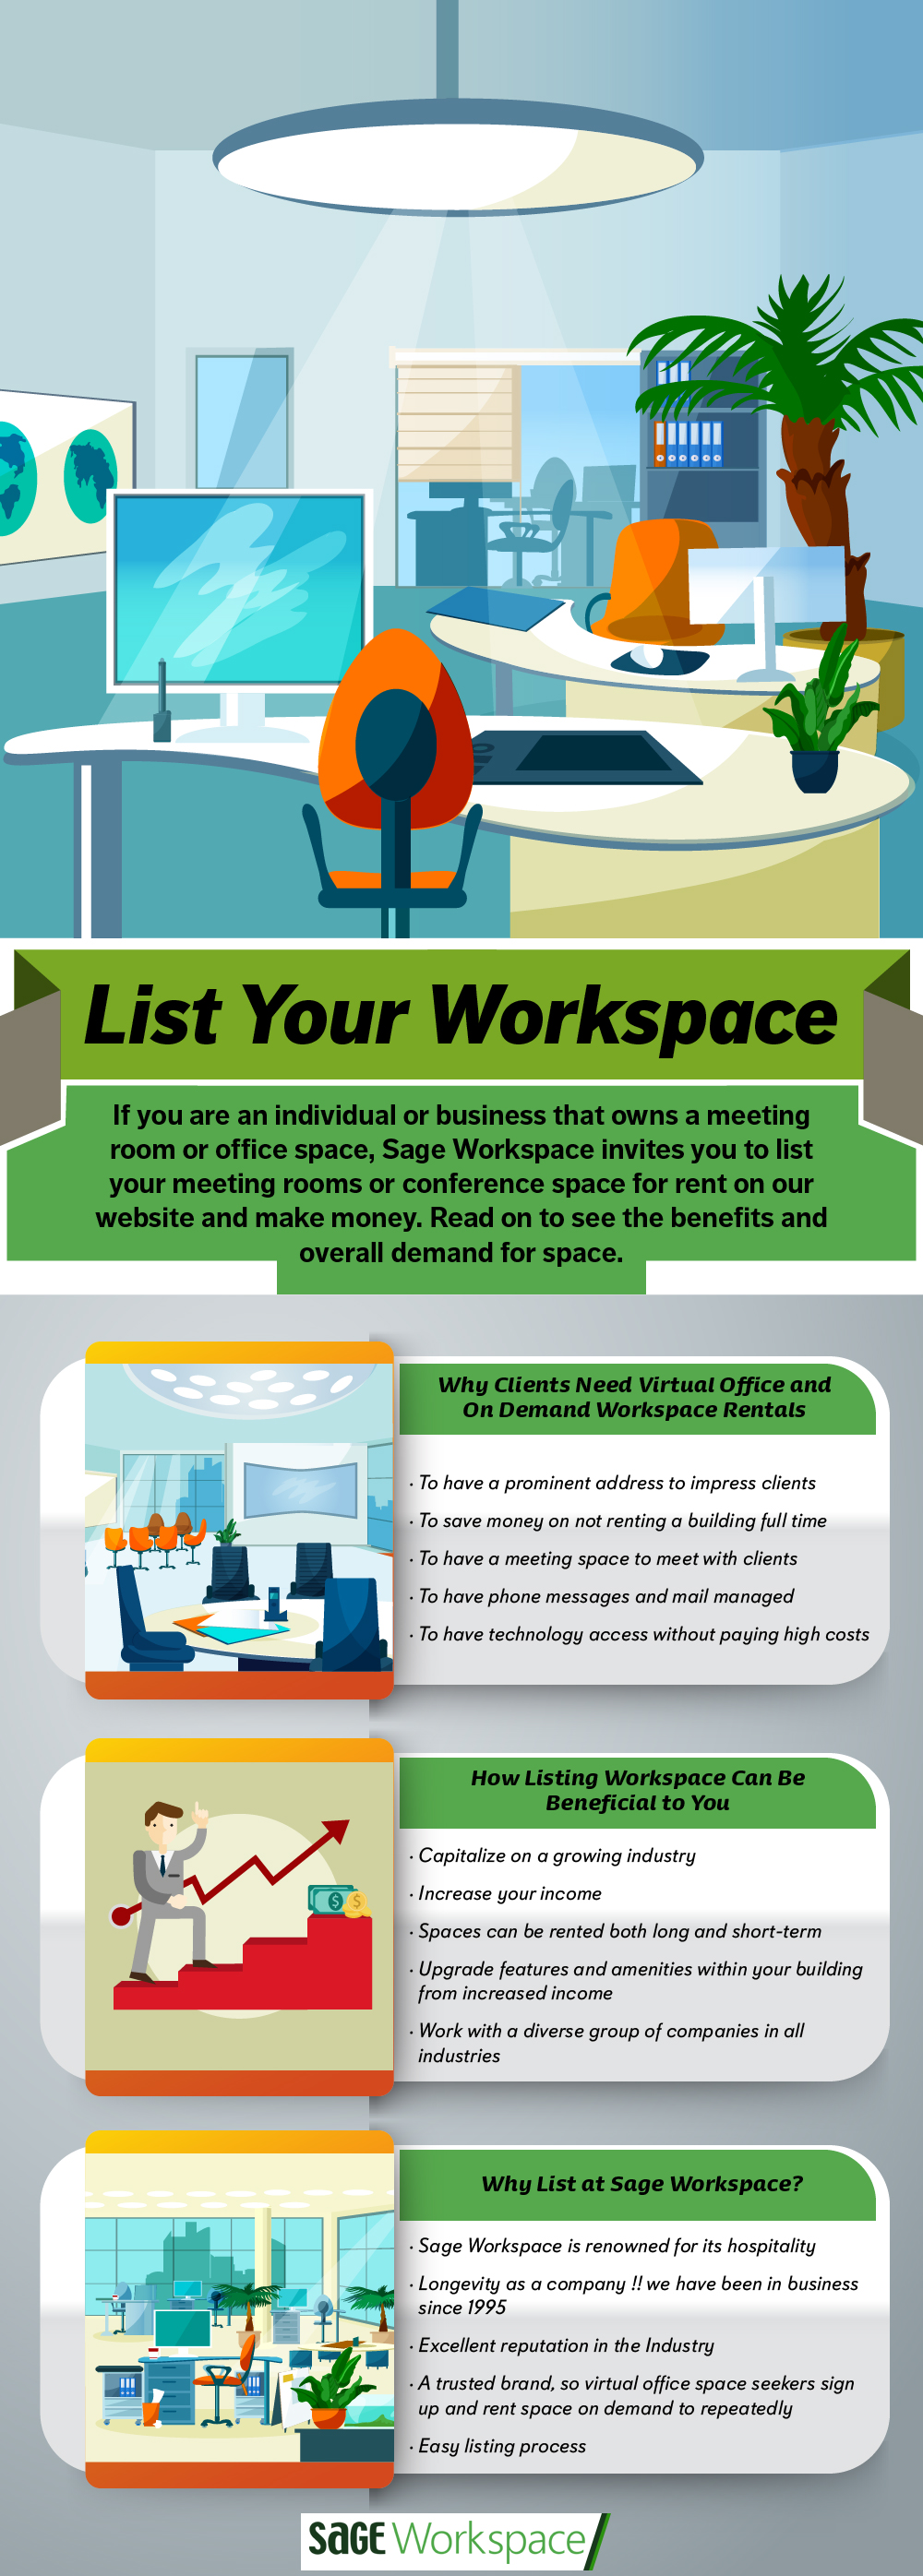 List Your Workspace